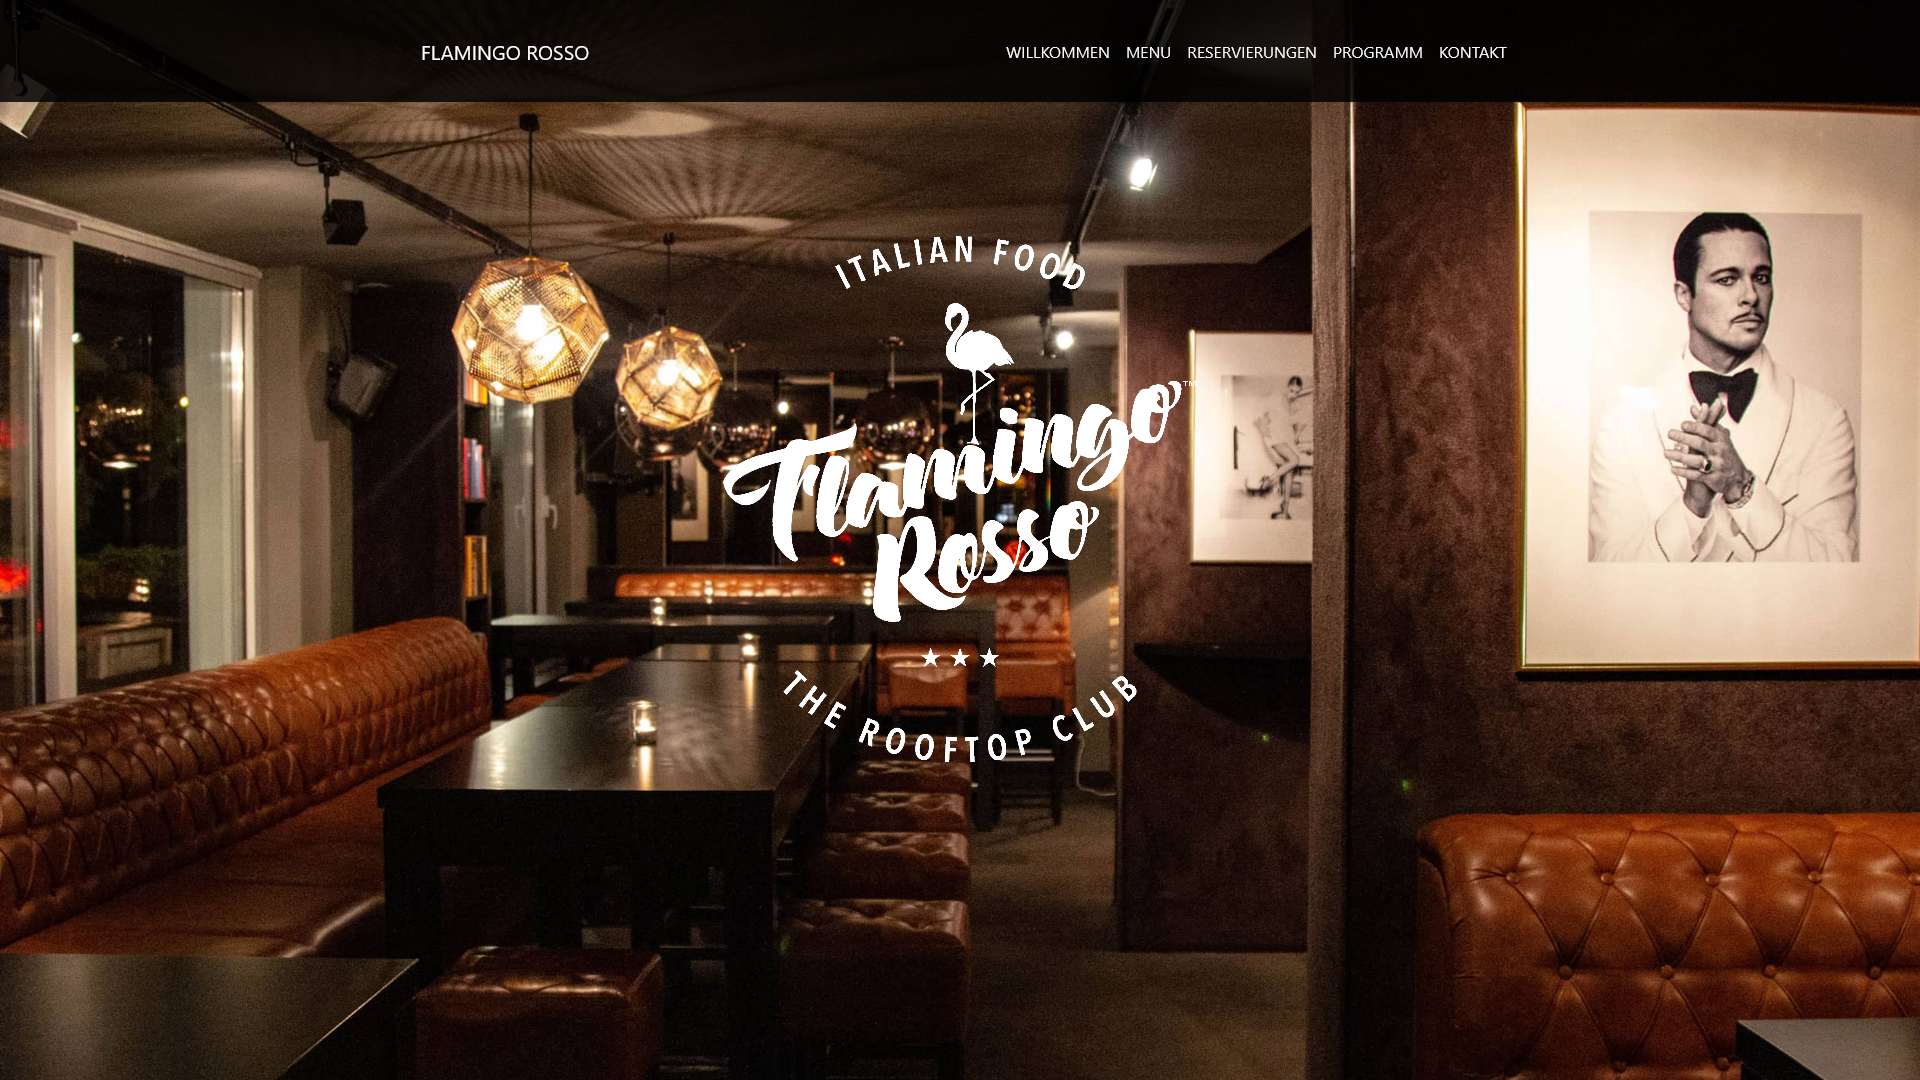 Landing Page - Flamingo Rosso